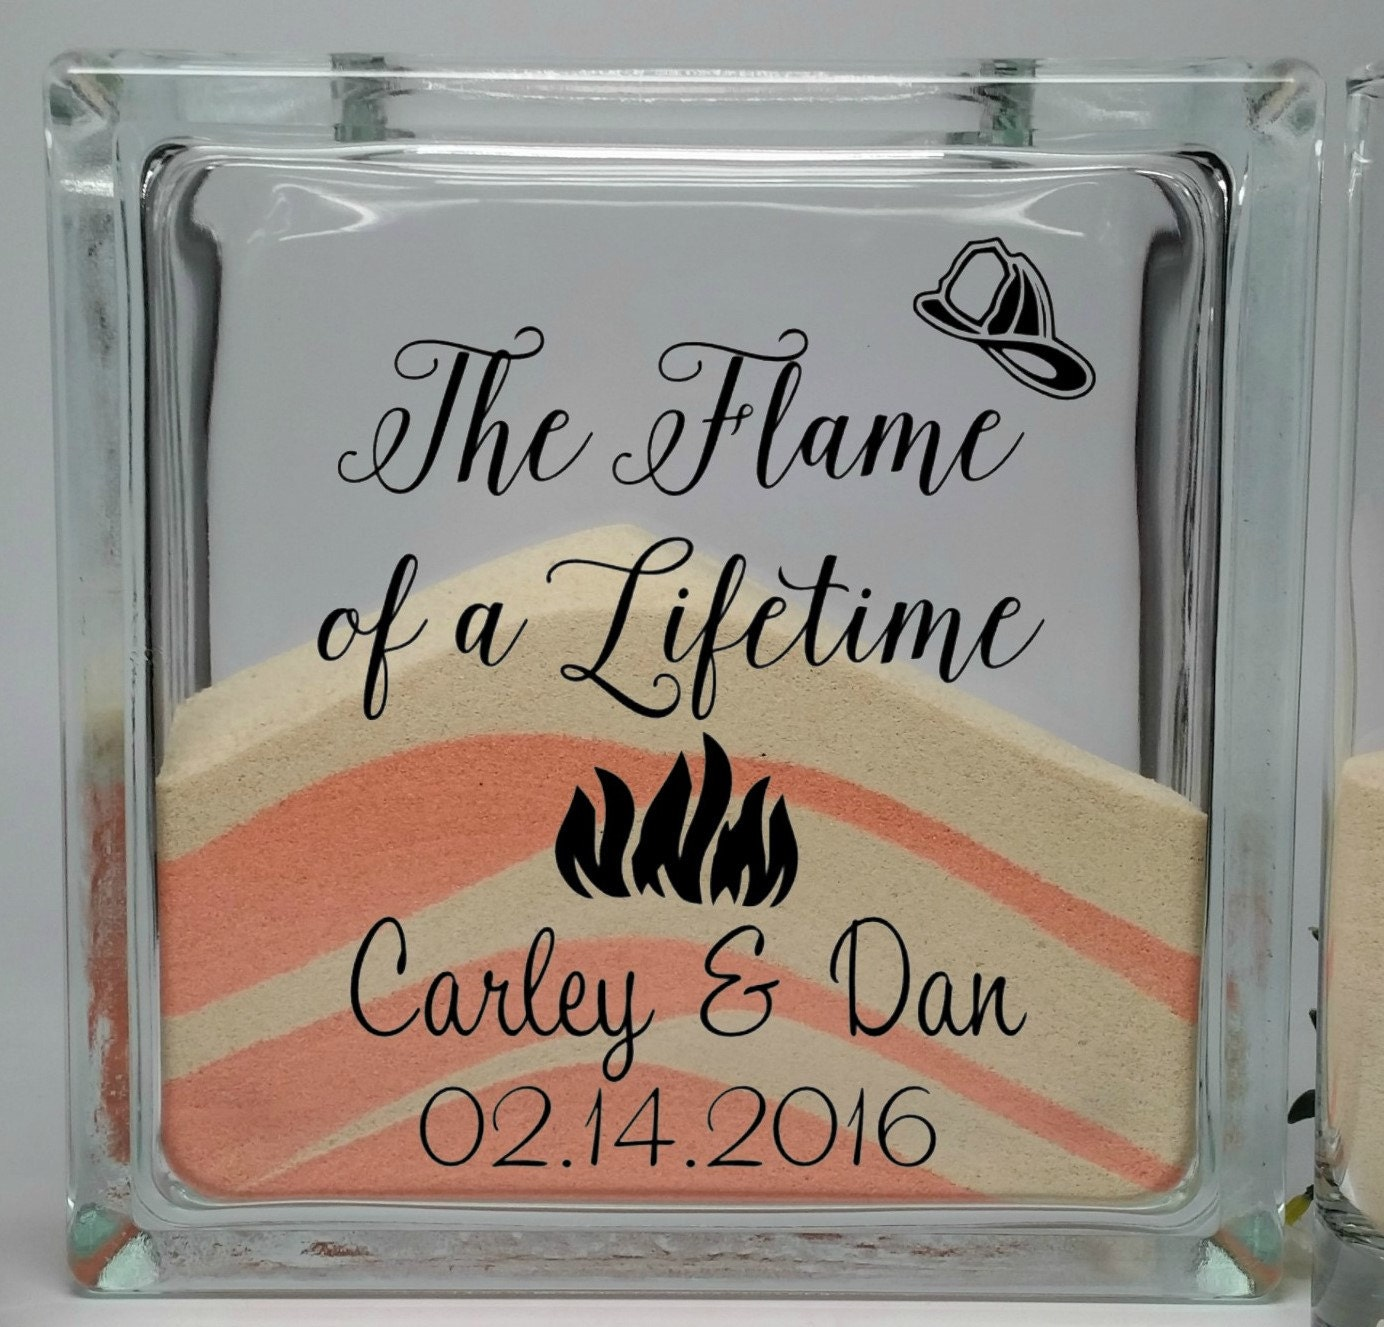 Firefighter wedding Etsy